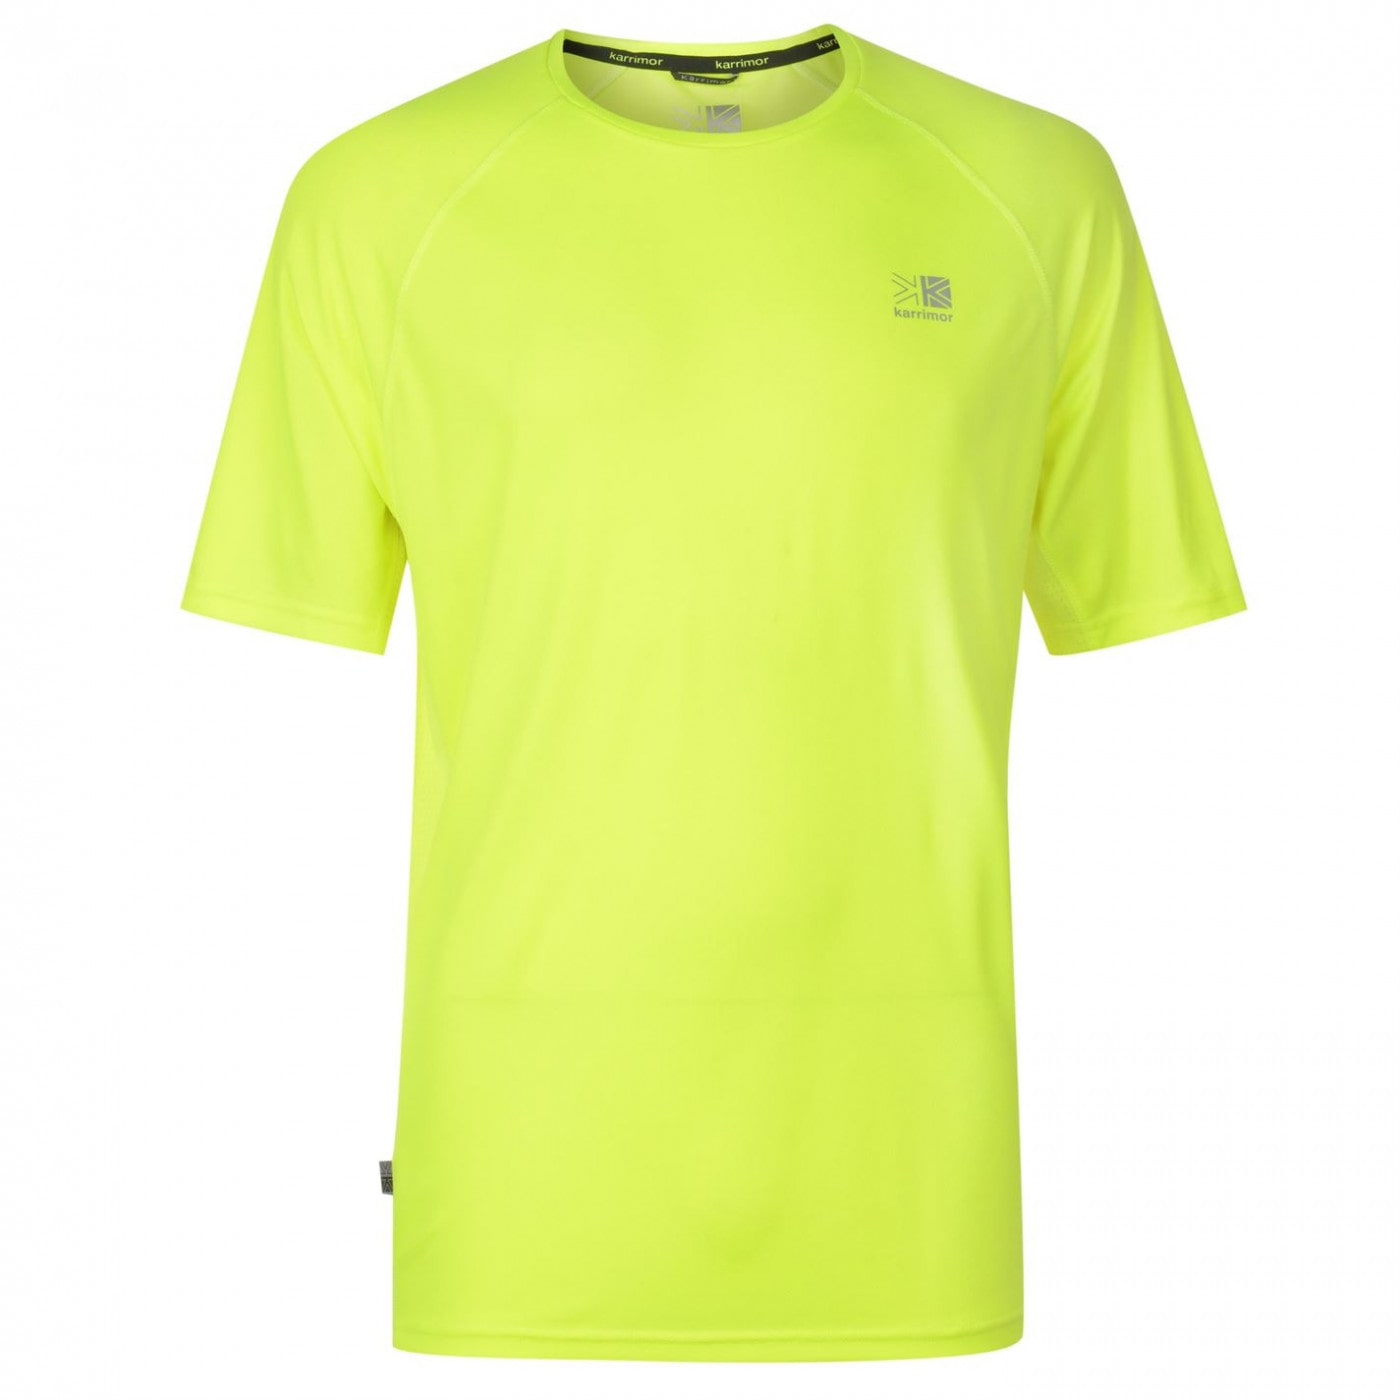 Karrimor Short Sleeve Run T Shirt Mens